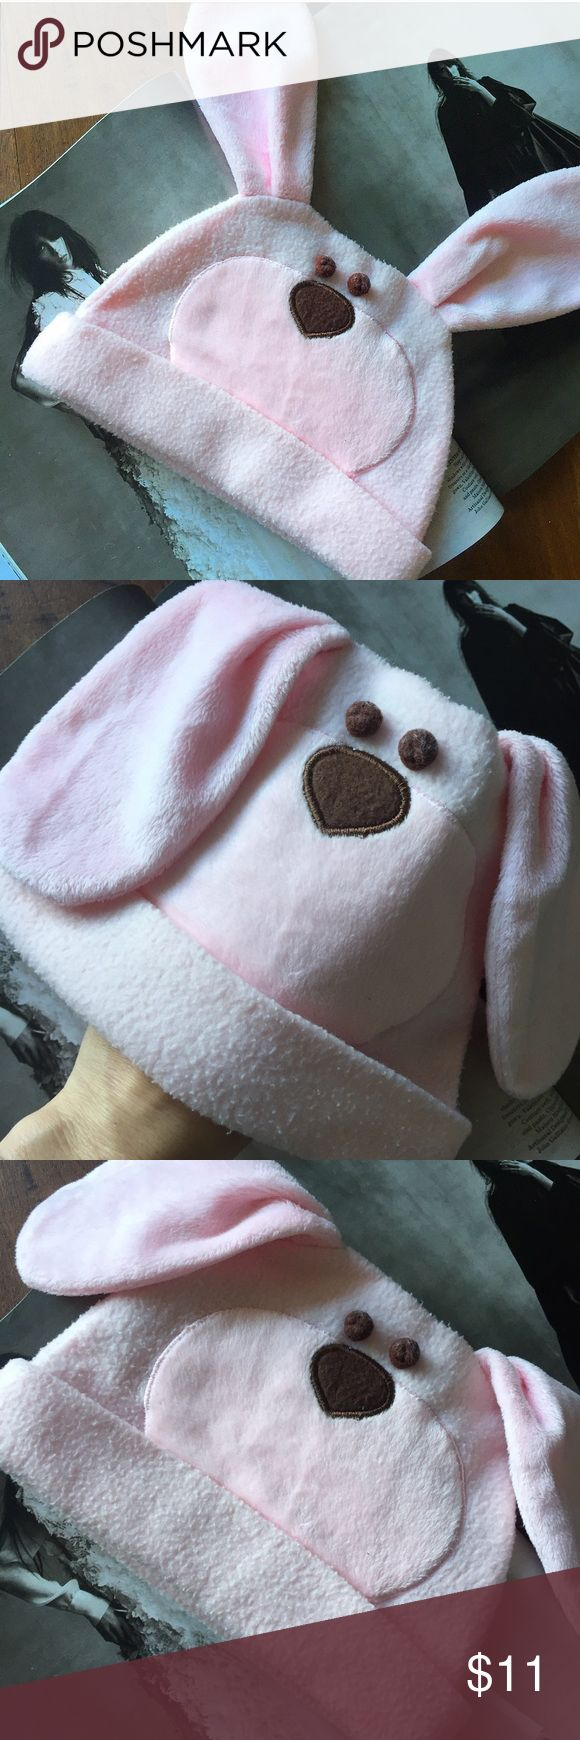 BUNNY HAT pink girls baby Good condition. Soft and soooo cute! Chanel Dior Zara Fendi Kenzo Prada Hermes Michael Kors Valentino Lacoste Louis Vuitton Balenciaga Alexander Wang Kate Spade Hugo Boss Burberry Prada Gucci Runway Fashion show.  Free people. Premuim Signature collection. Bundle with other items to get 15% off. Accessories Hats